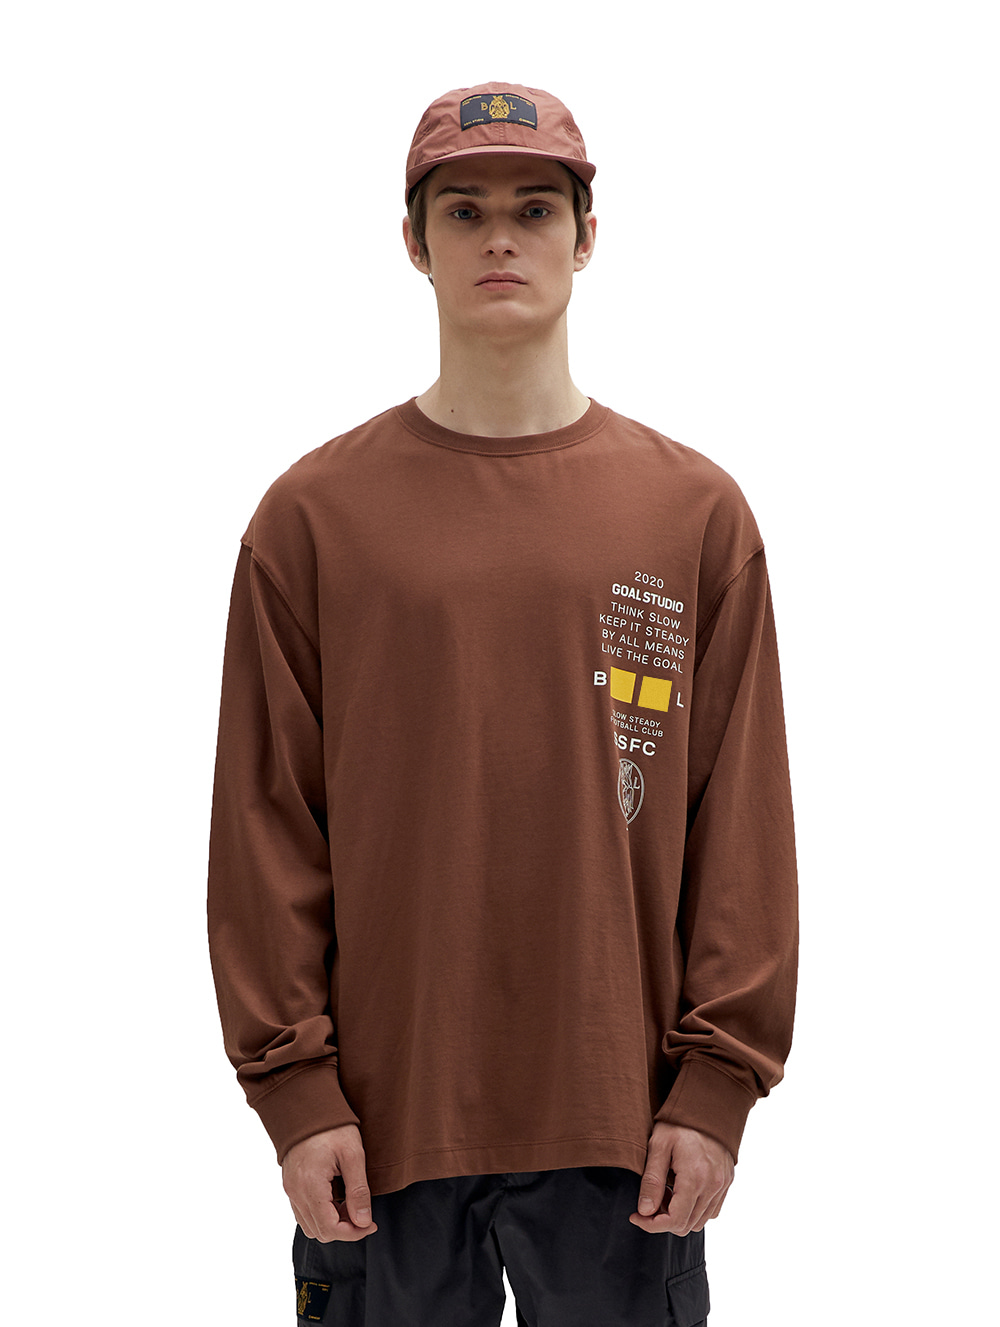 SSFC JERSEY SINGLE LONG SLEEVE - BROWN